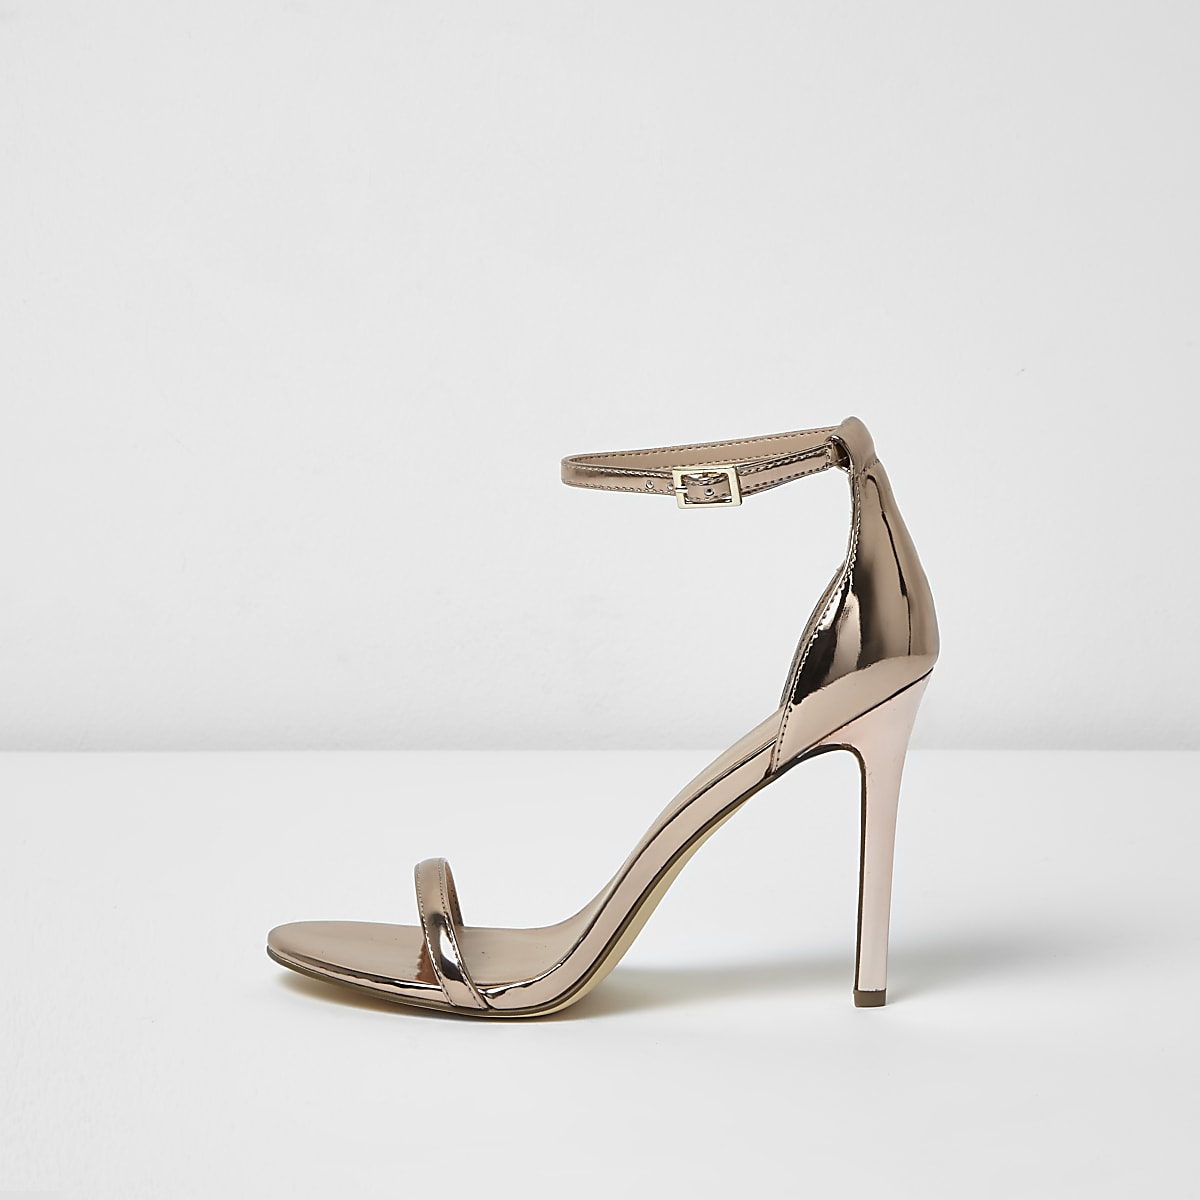 8840da10f6fce Rose gold metallic barely there heels - Sandals - Shoes & Boots - women